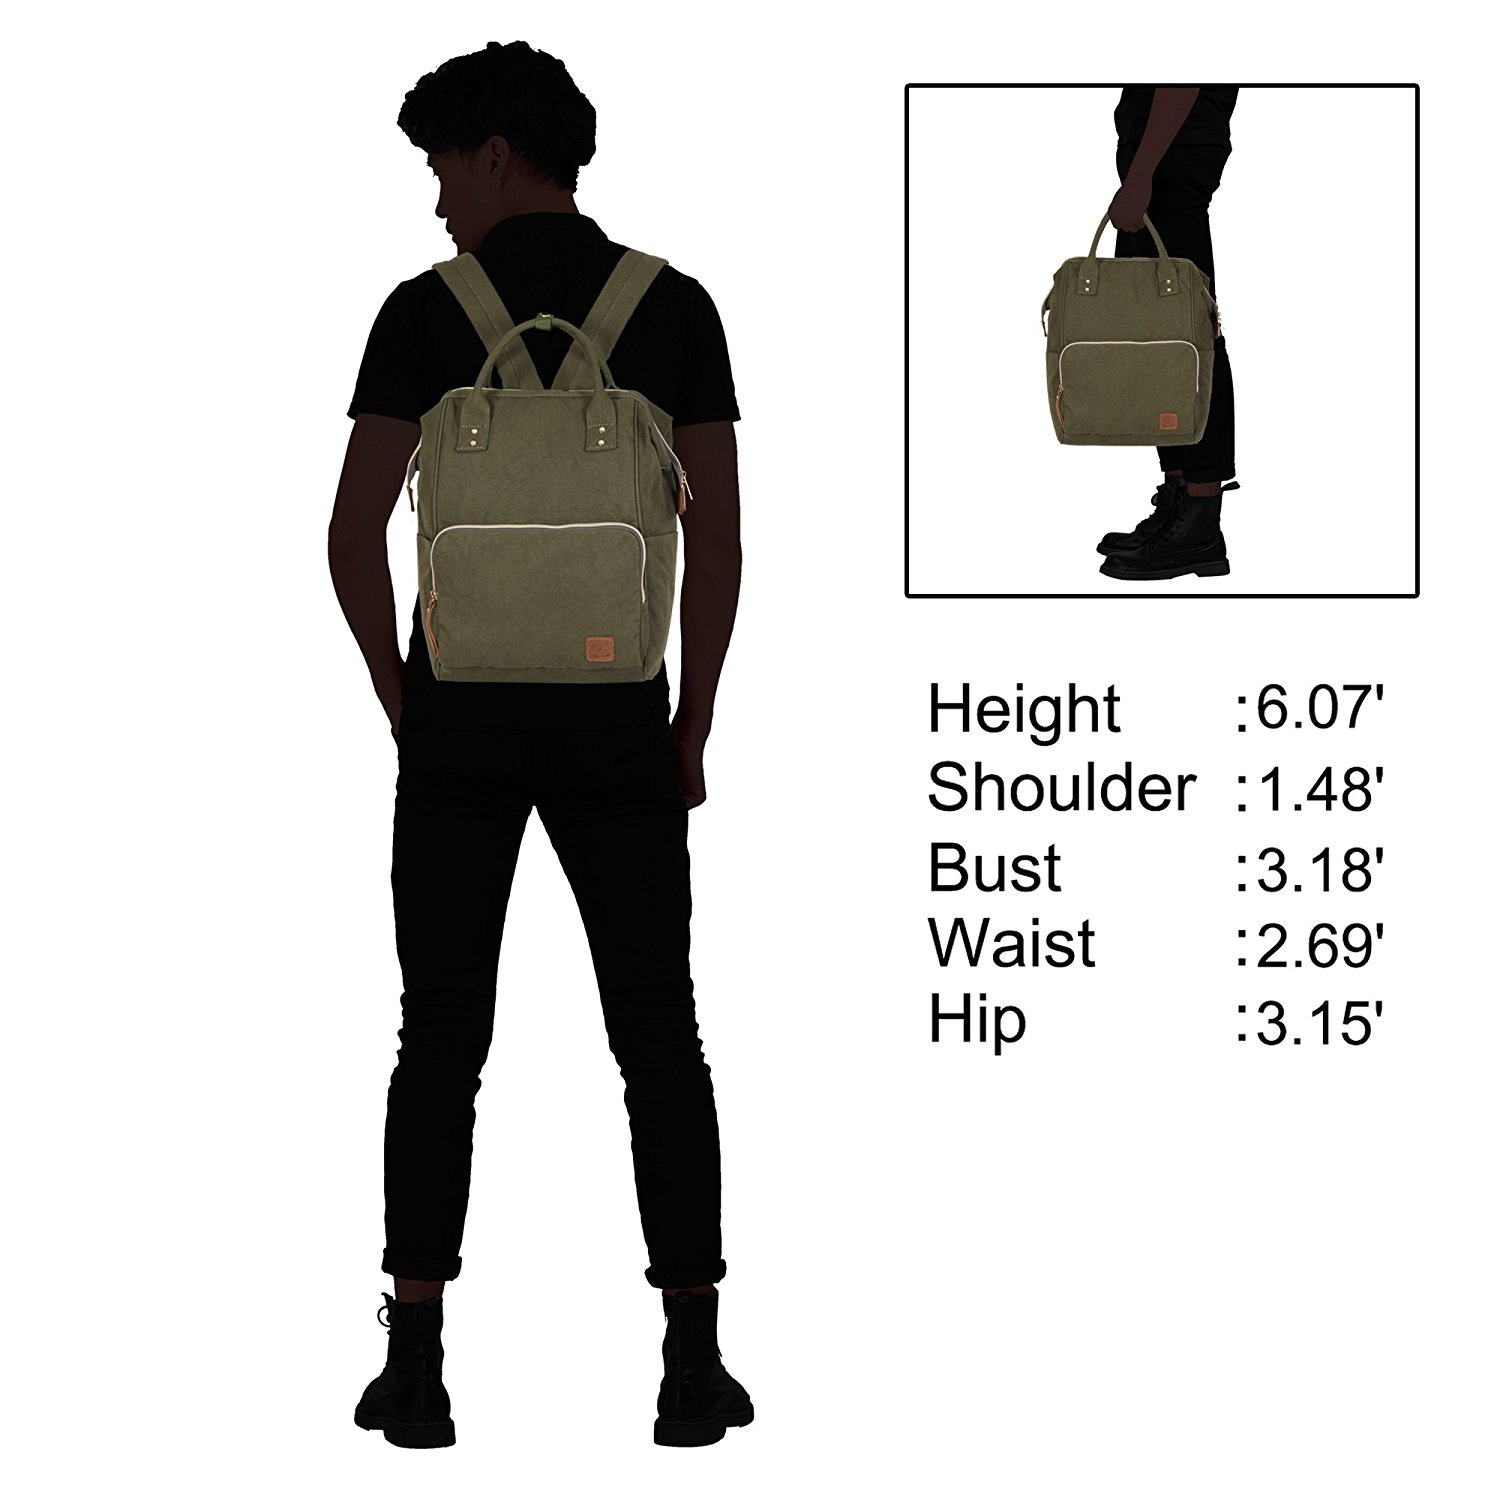 33d824a64bee Veevan Canvas Large Capacity Travel Backpack Casual Daypack School Bags for  Women Men Fits 40cm Laptop Army Green